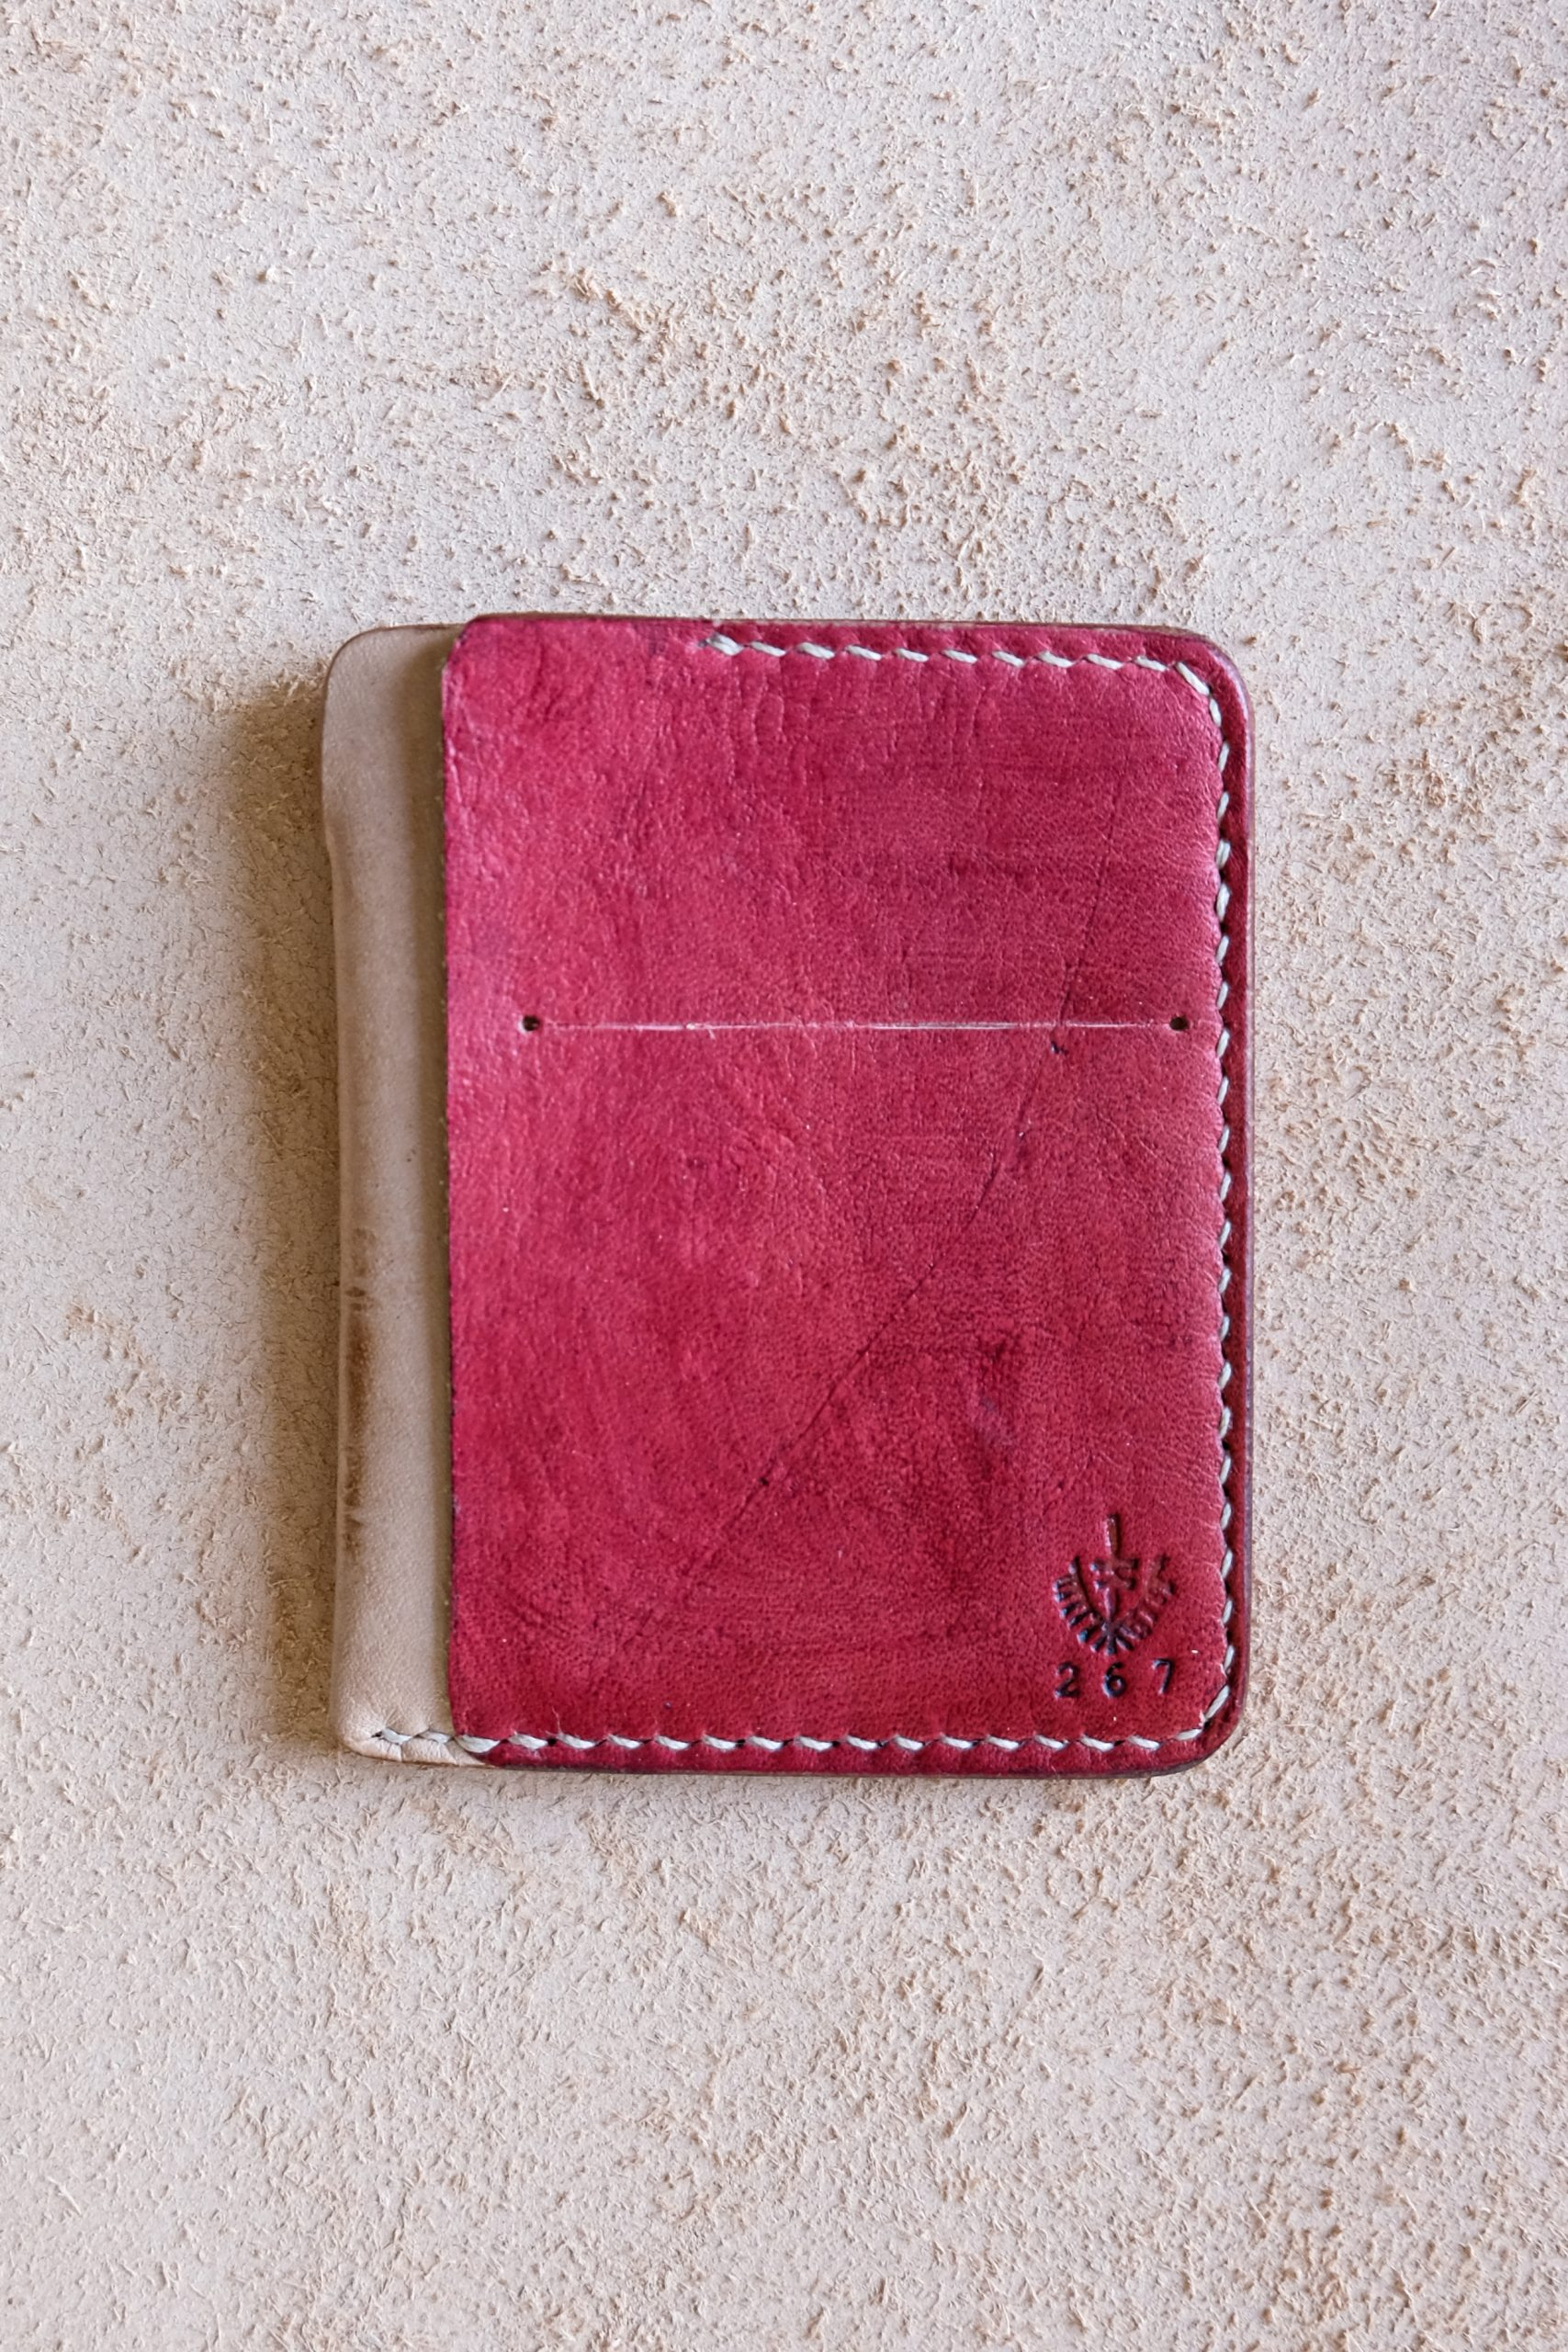 lerif designs vale leather wallet in cochineal on beige background